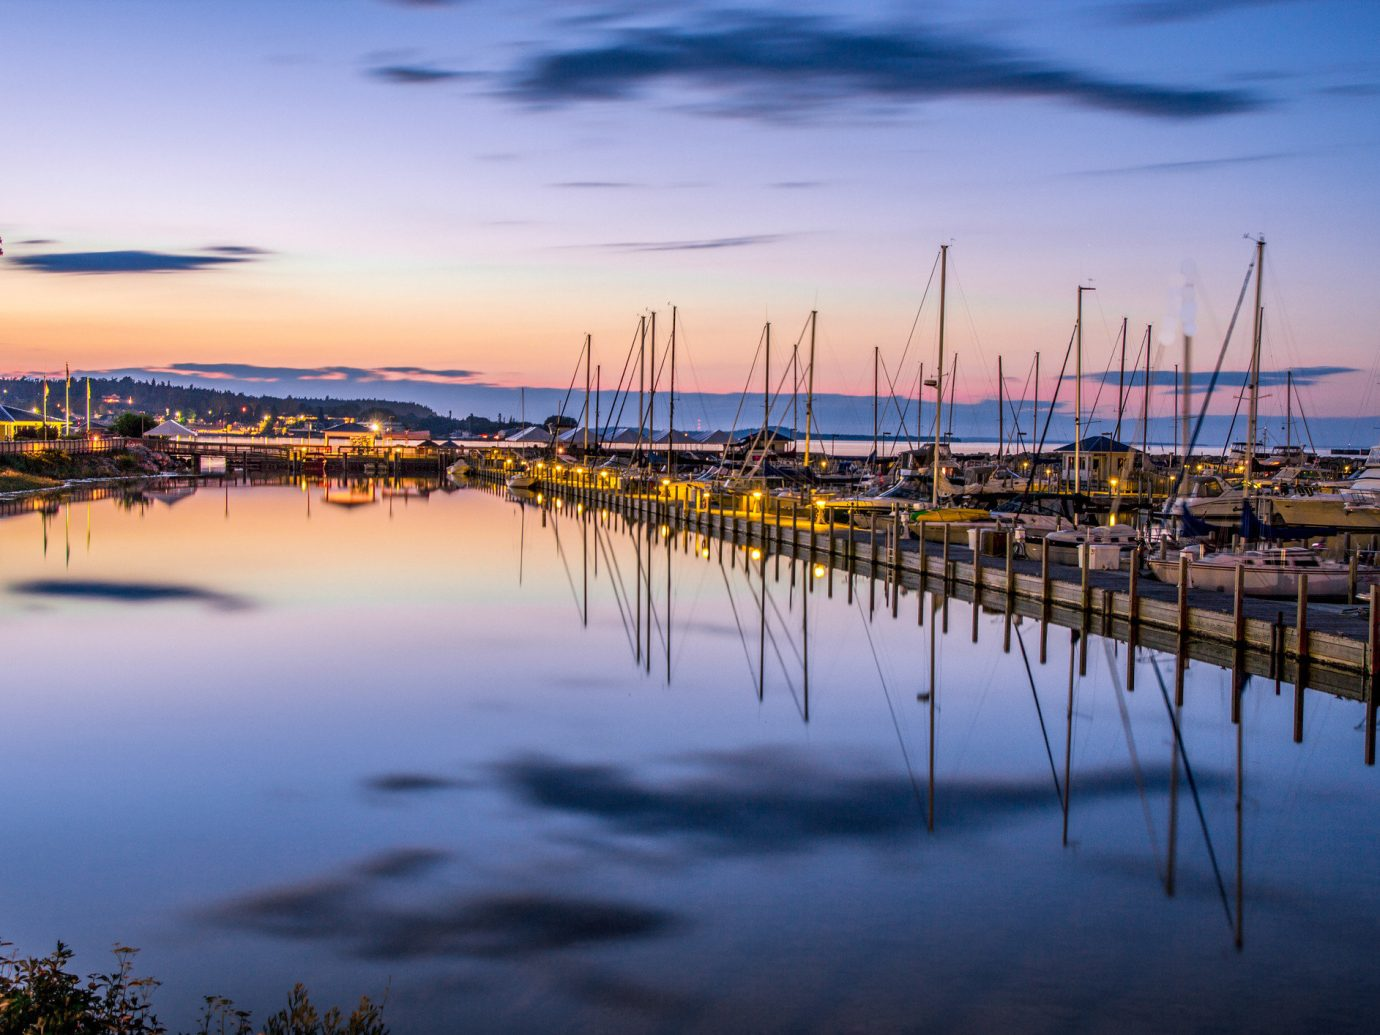 Trip Ideas outdoor sky water scene reflection shore body of water sunrise Sea Sunset dawn horizon evening dusk dock morning cloud marina Harbor Lake docked bay line lined several day